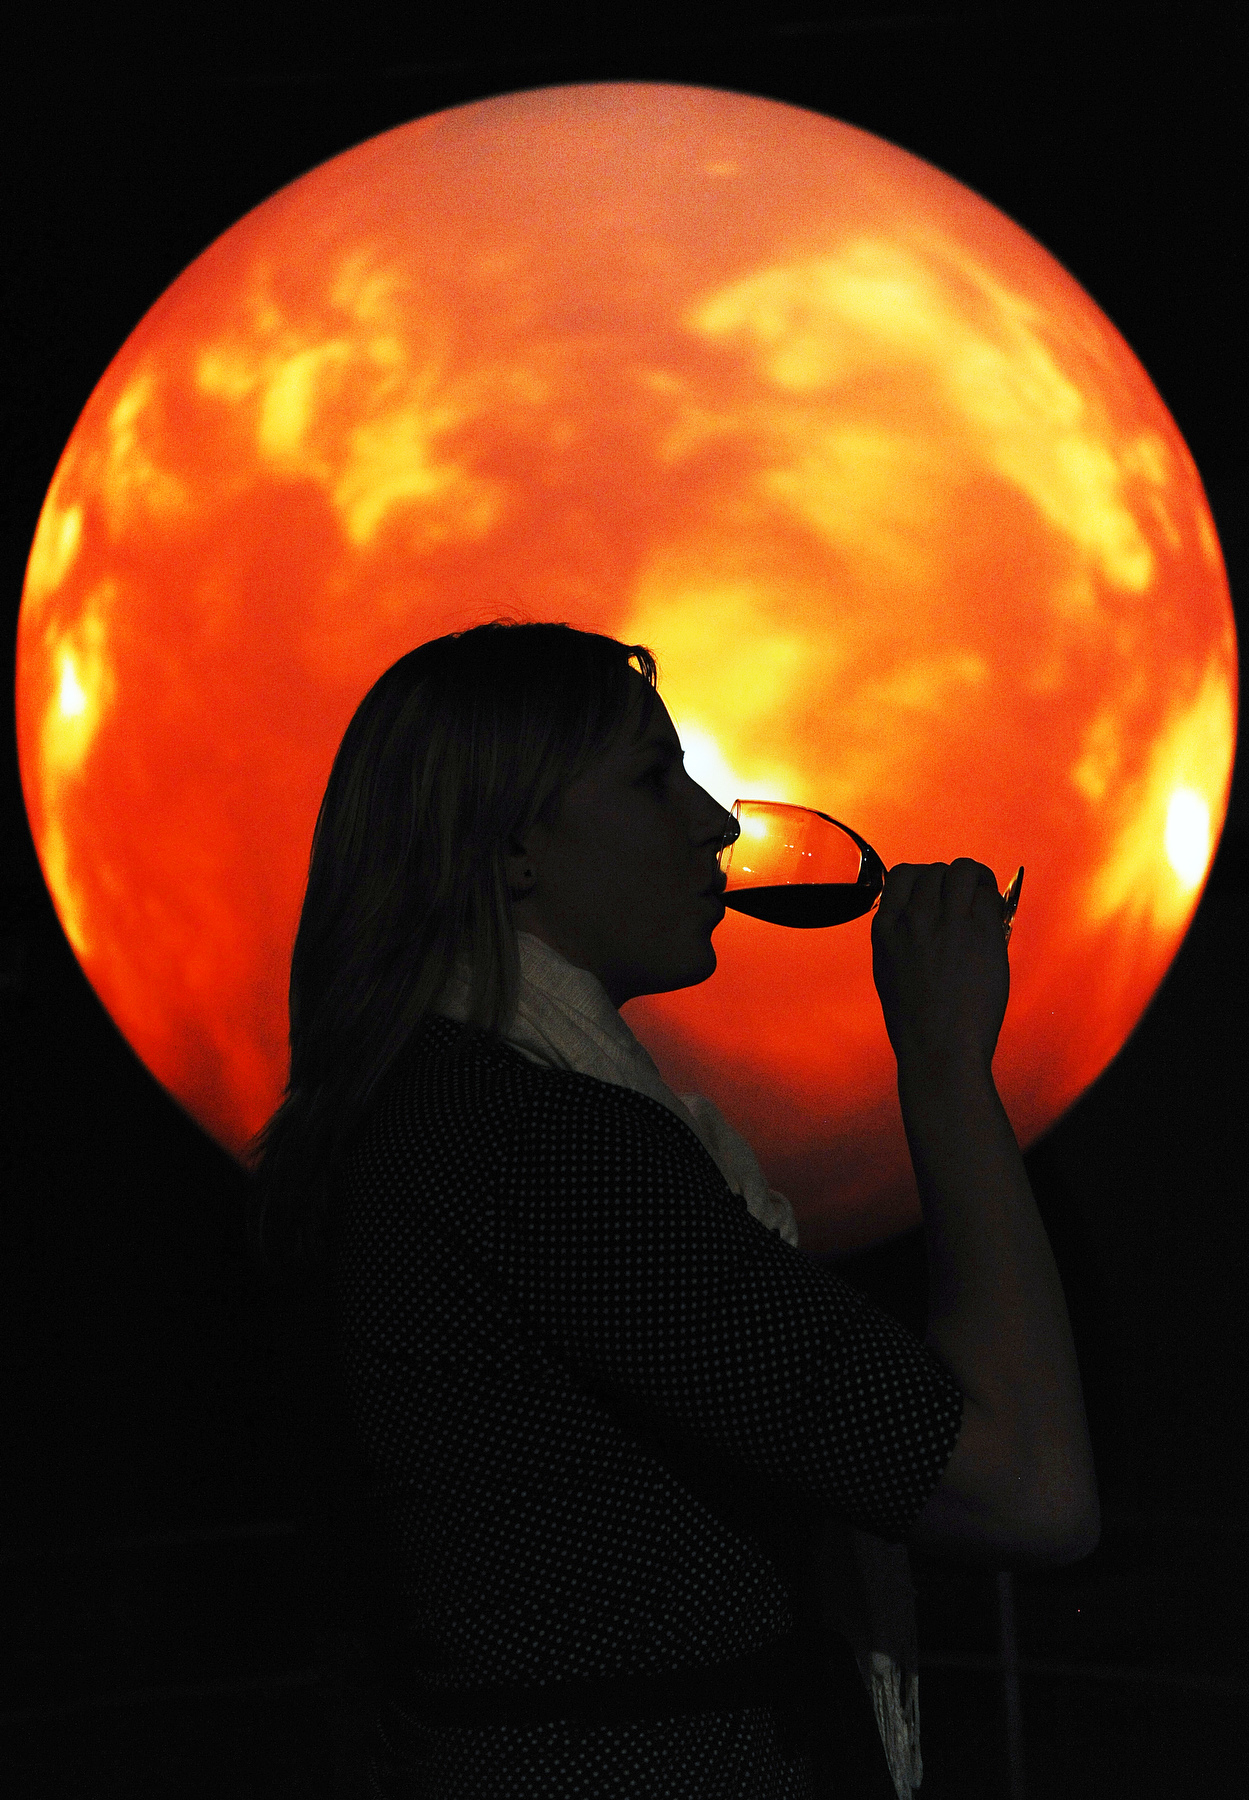 A woman drinks a glass of wine during Science Lounge at the Denver Museum of Nature & Science in Denver, Colorado.